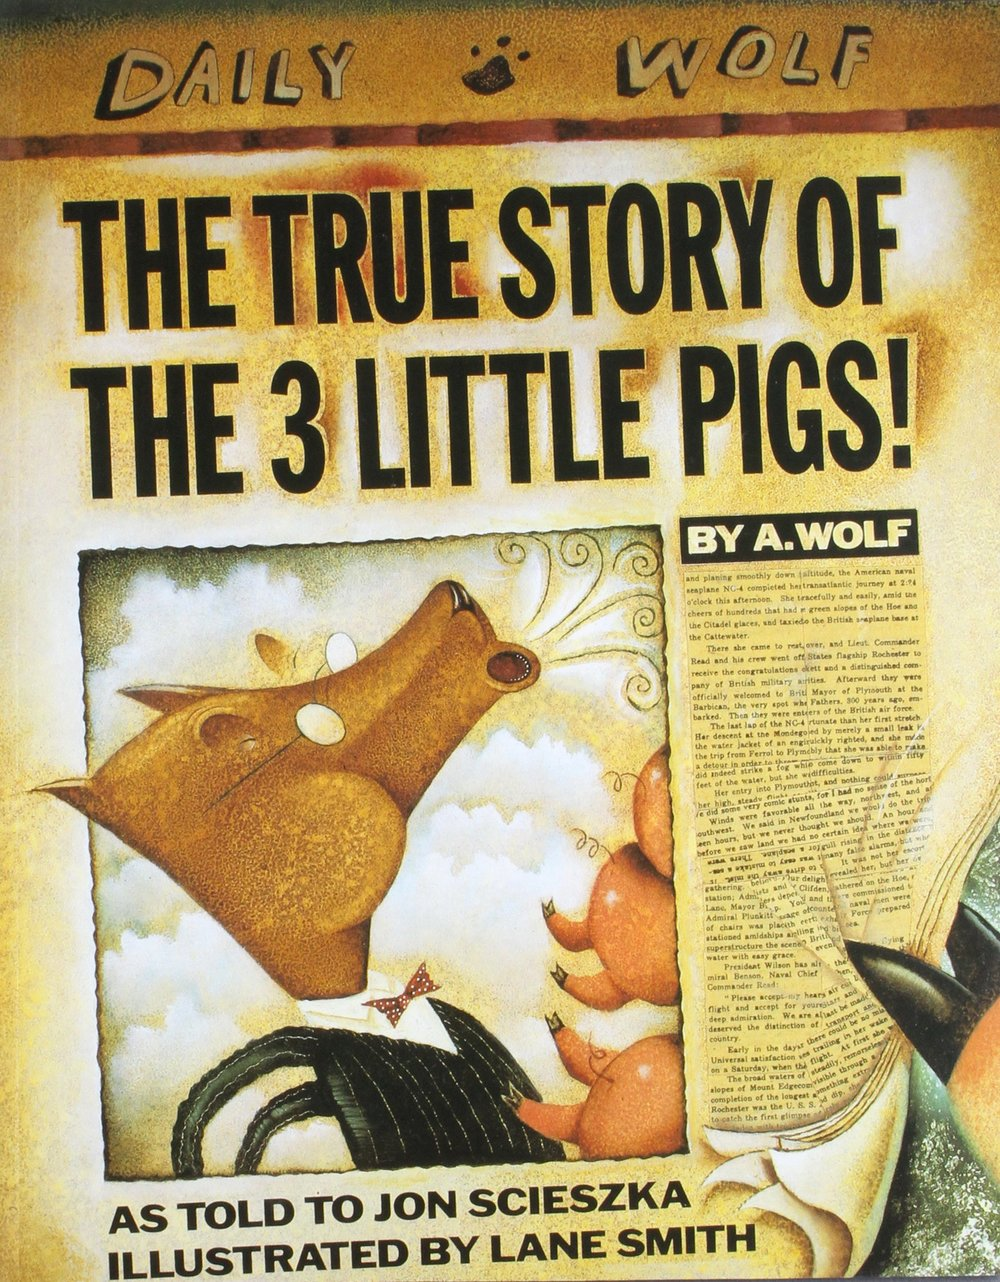 The True story of tyhe three little pigs.jpg